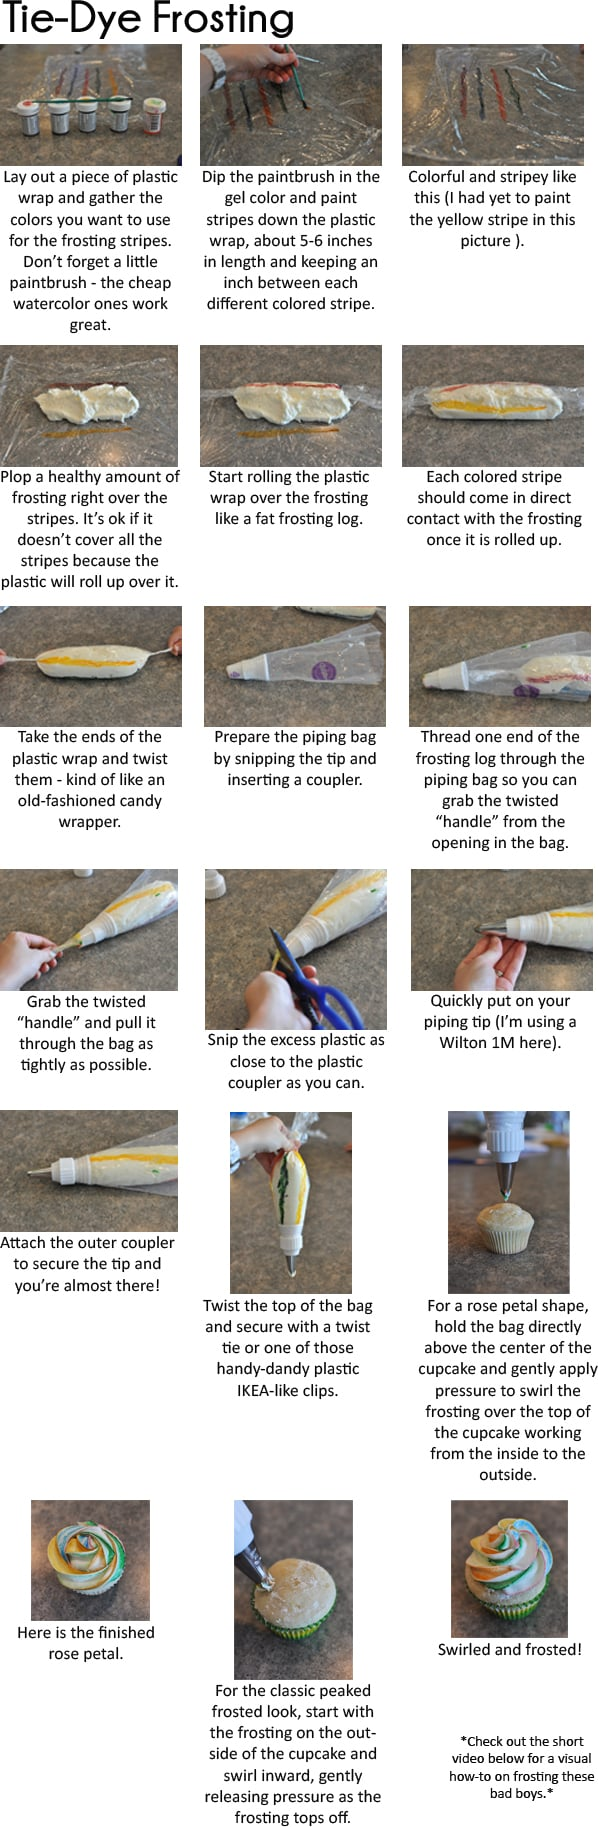 collage of photos and instructions on how to make tie-dye frosting